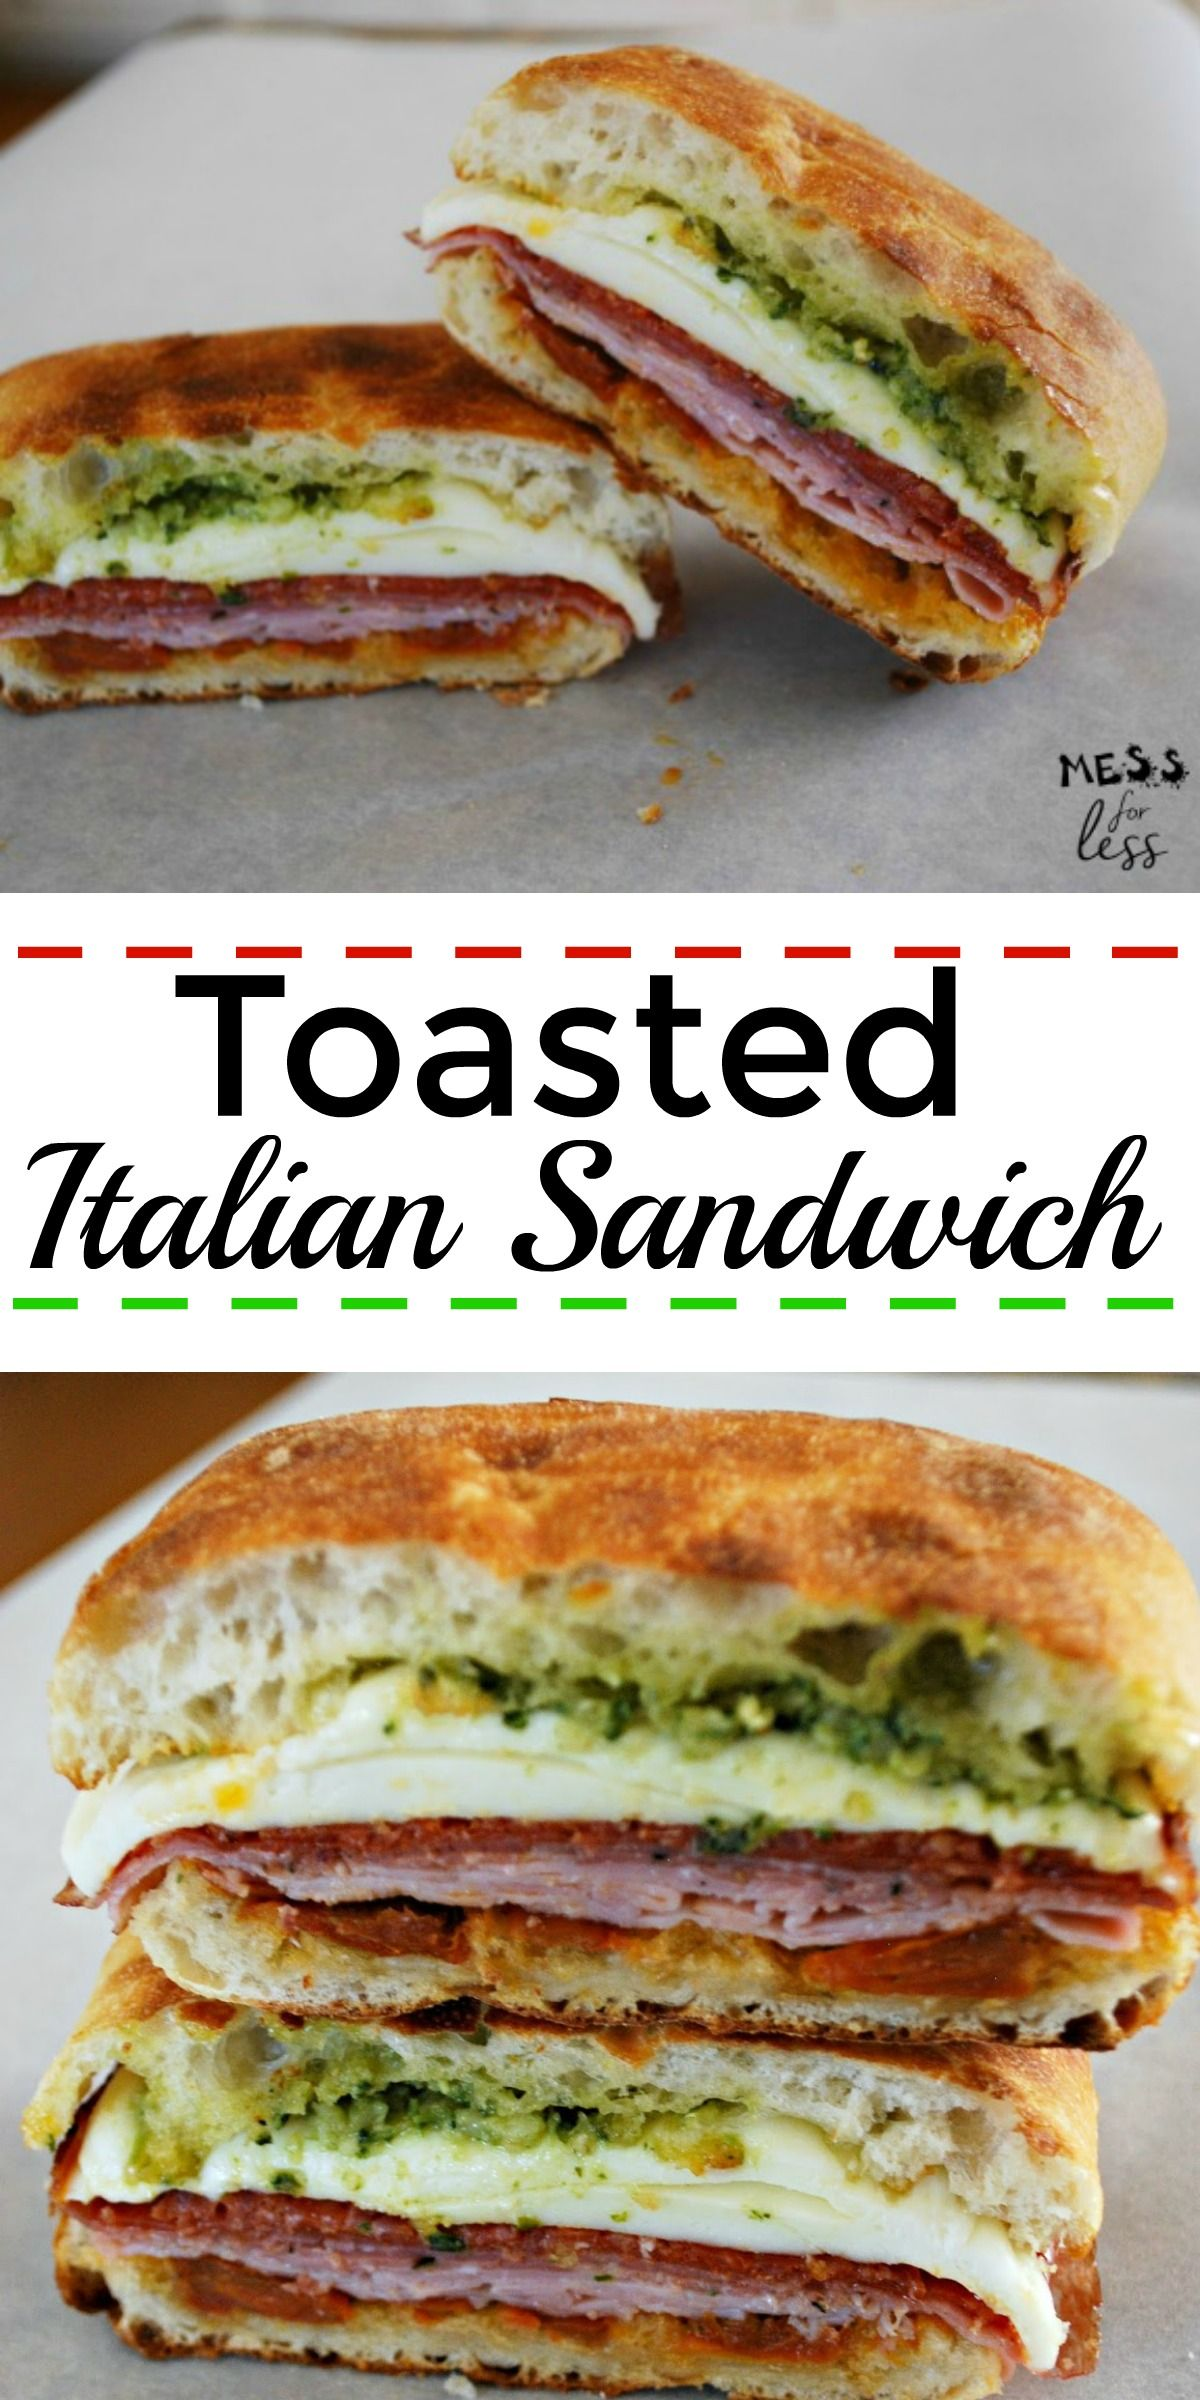 The Best Italian Sandwich Italian Sandwich Recipes Sandwiches Cafe Food